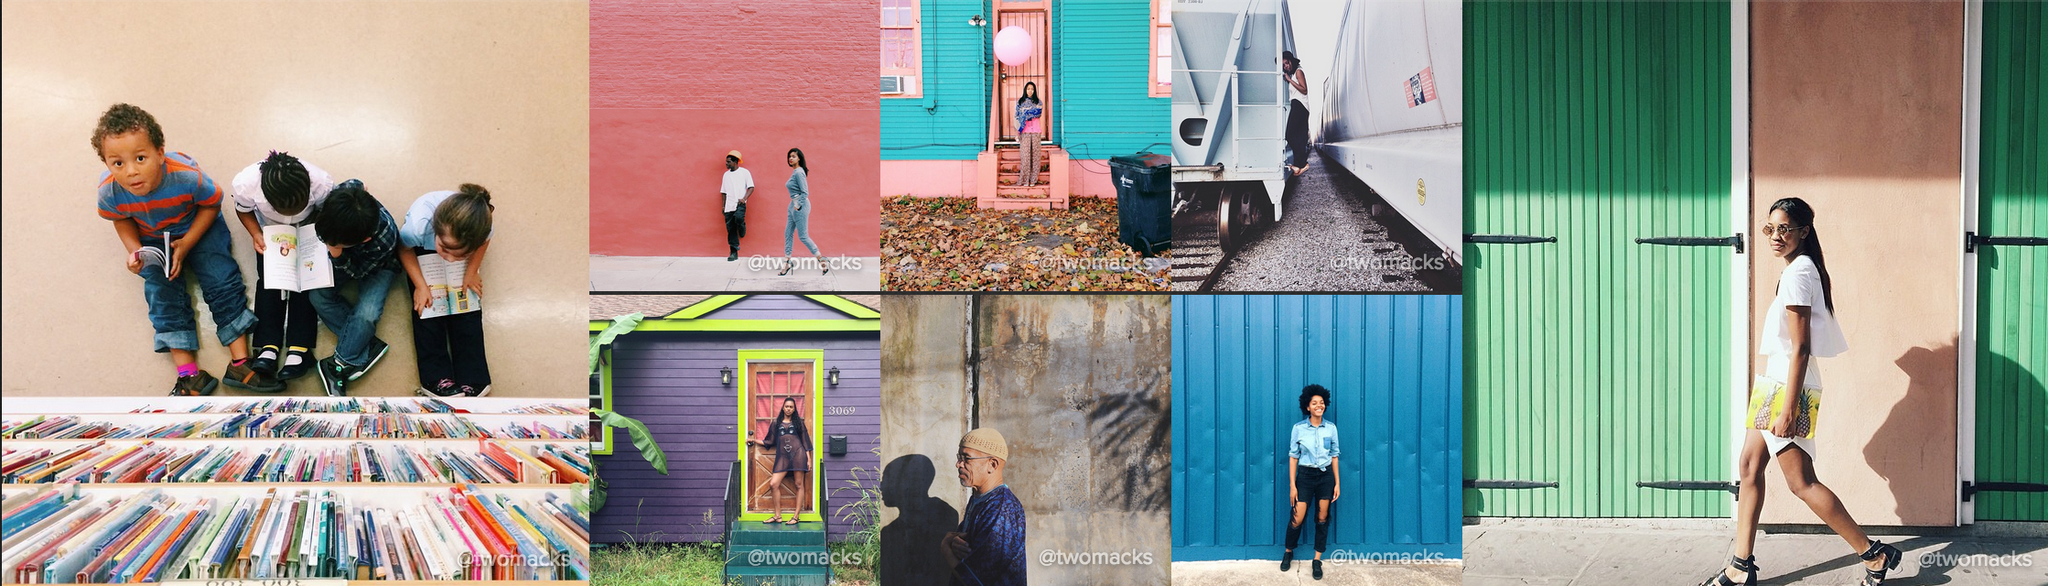 Reclaiming the Beauty in New Orleans with Whitney Mitchell blog.instagram.com/post/114859578… http://t.co/e4uTiB7BTN